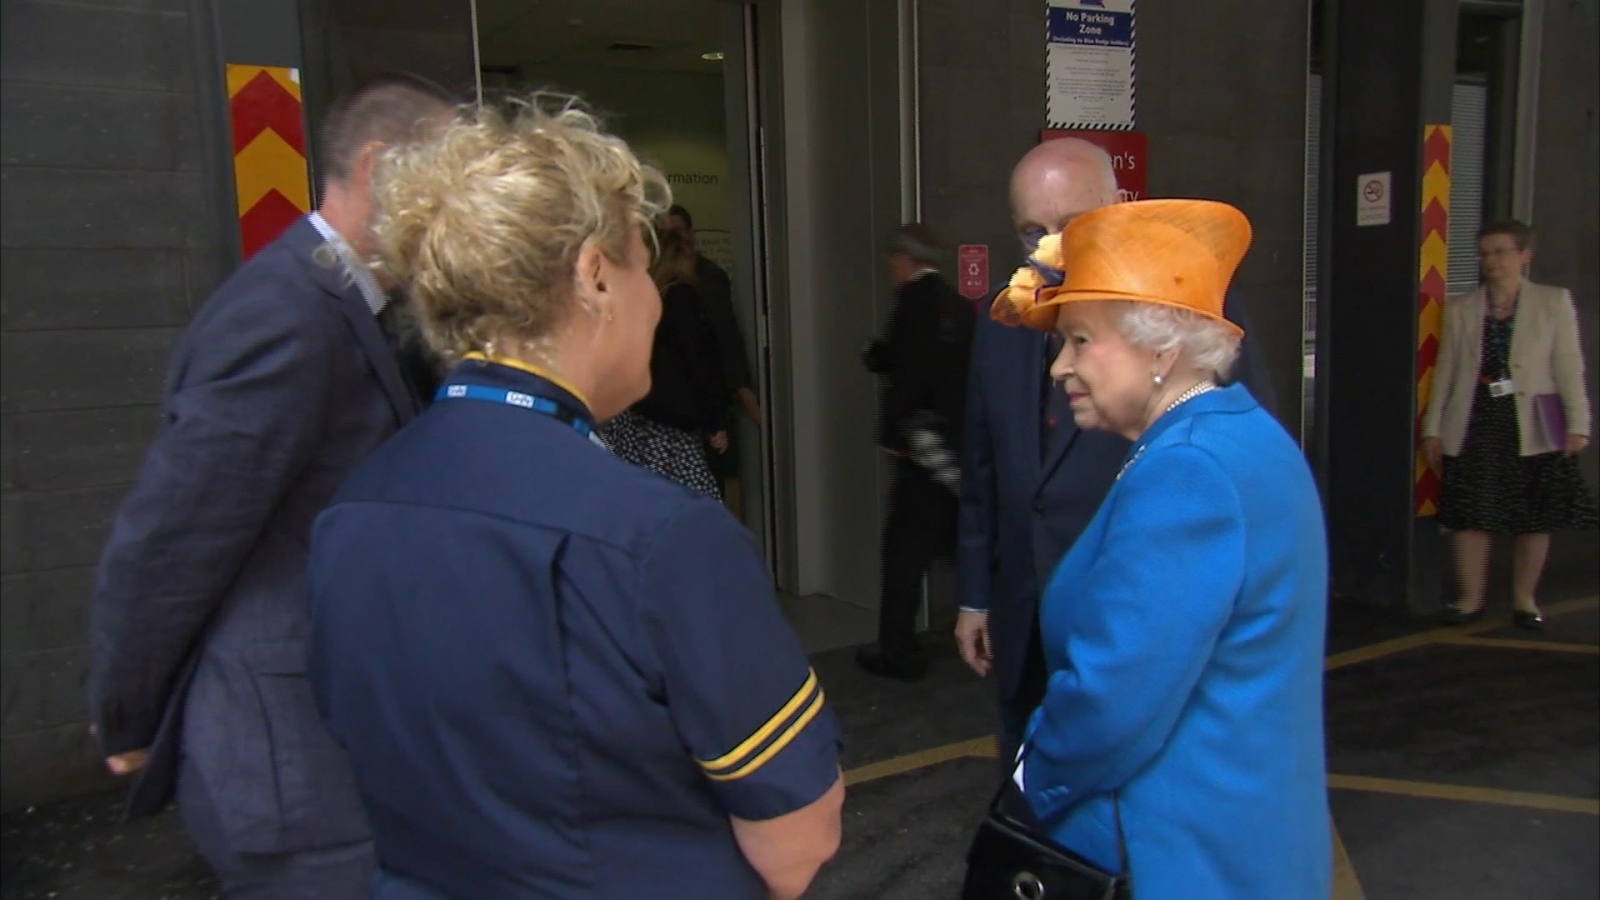 The Queen arrives at Manchester Hospital to meet victims and staff